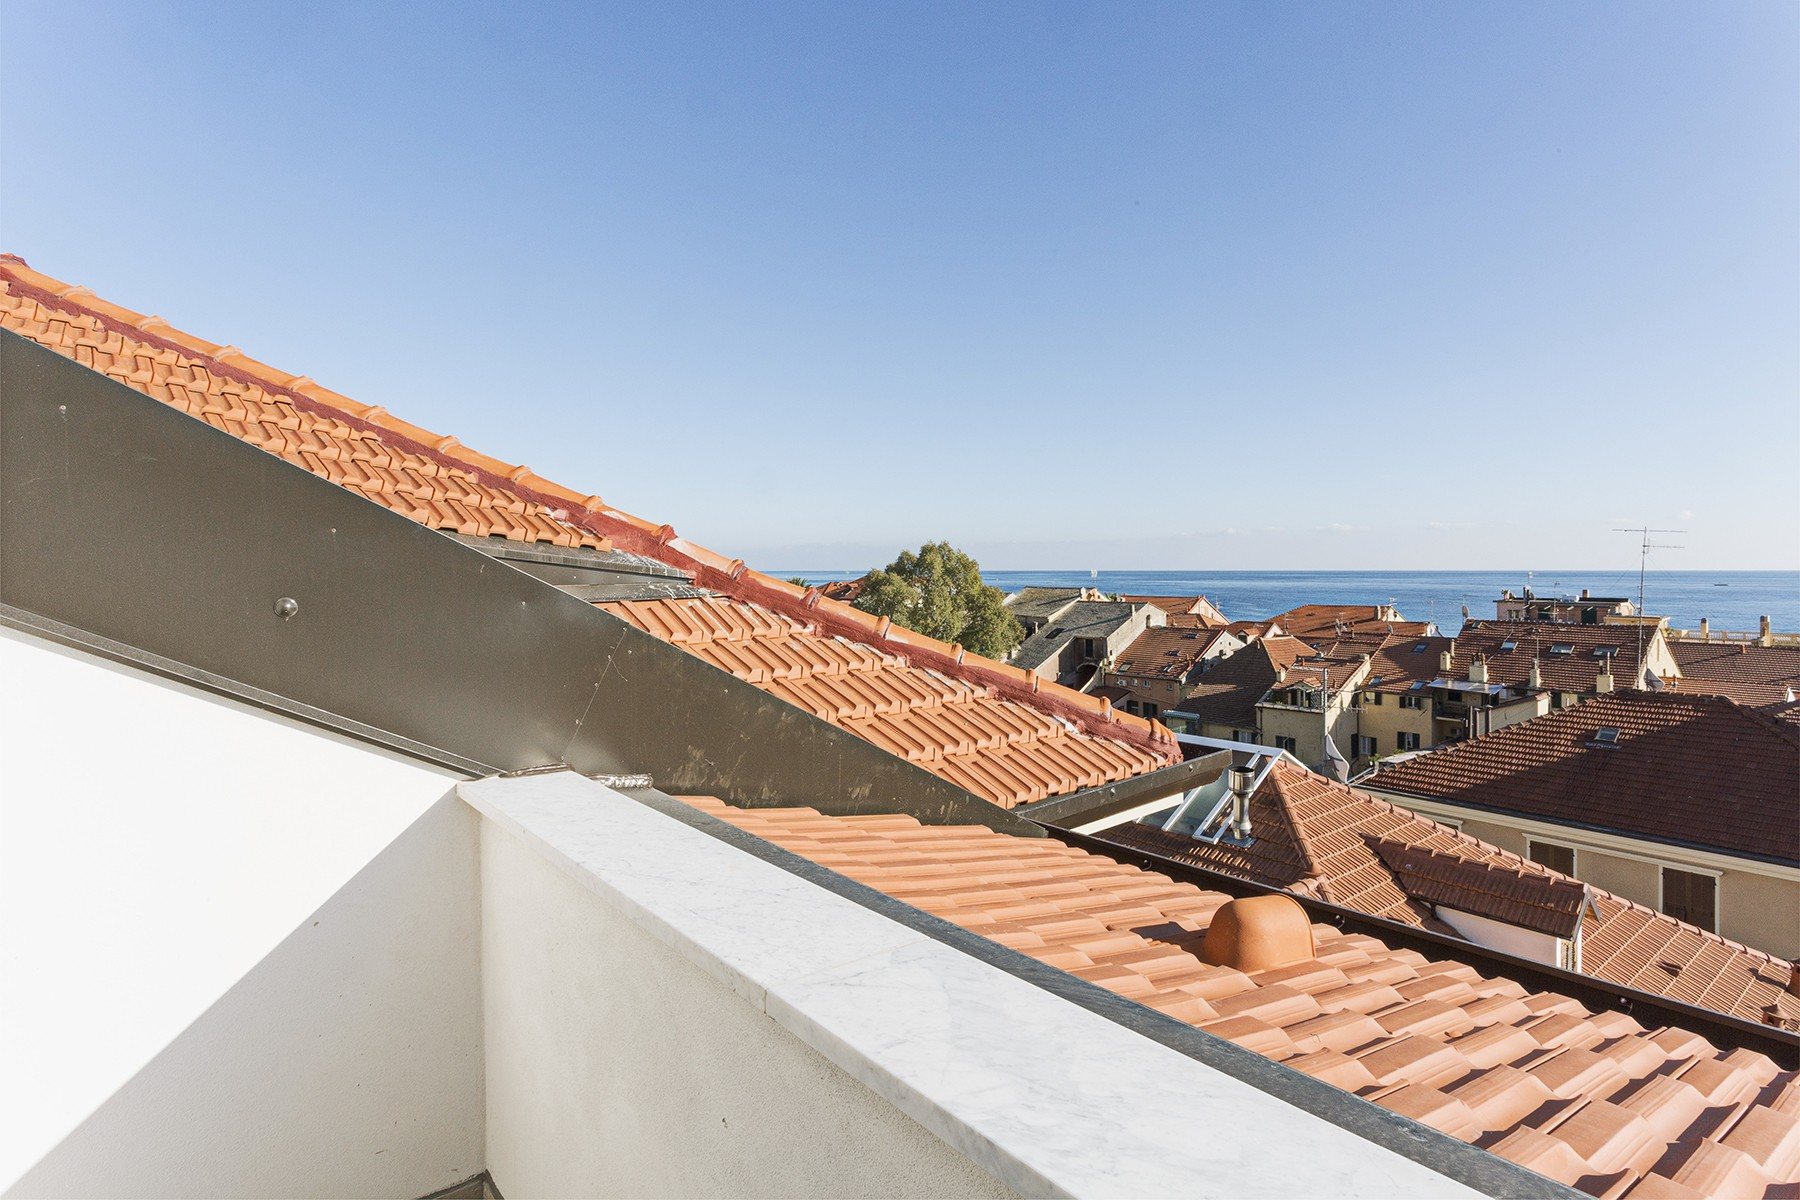 Additional photo for property listing at See view Penthouse in Alassio Via Mazzini Alassio, Savona 17021 Italien